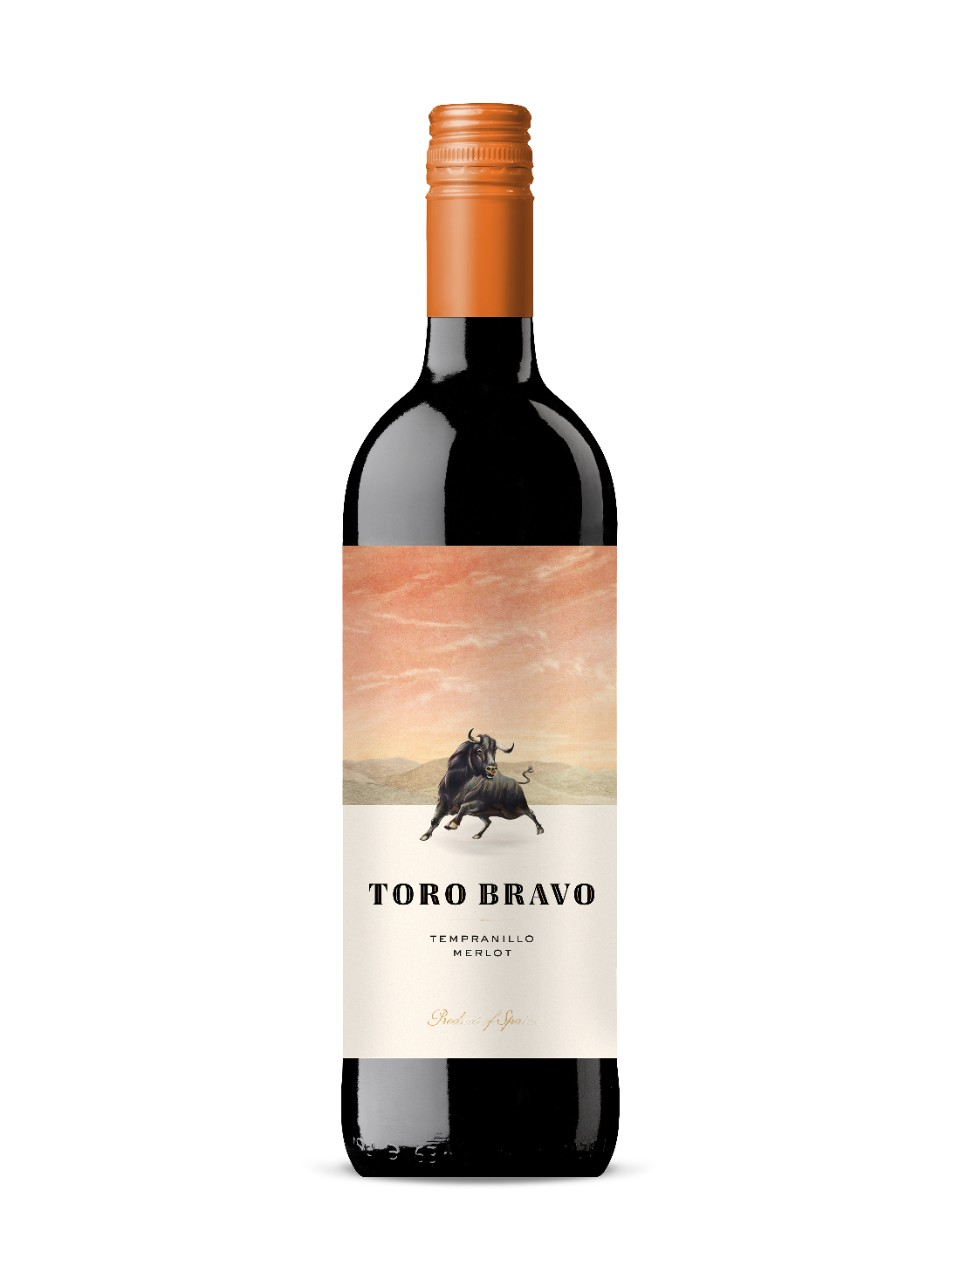 Toro Bravo Tempranillo Merlot, DO Valencia from LCBO